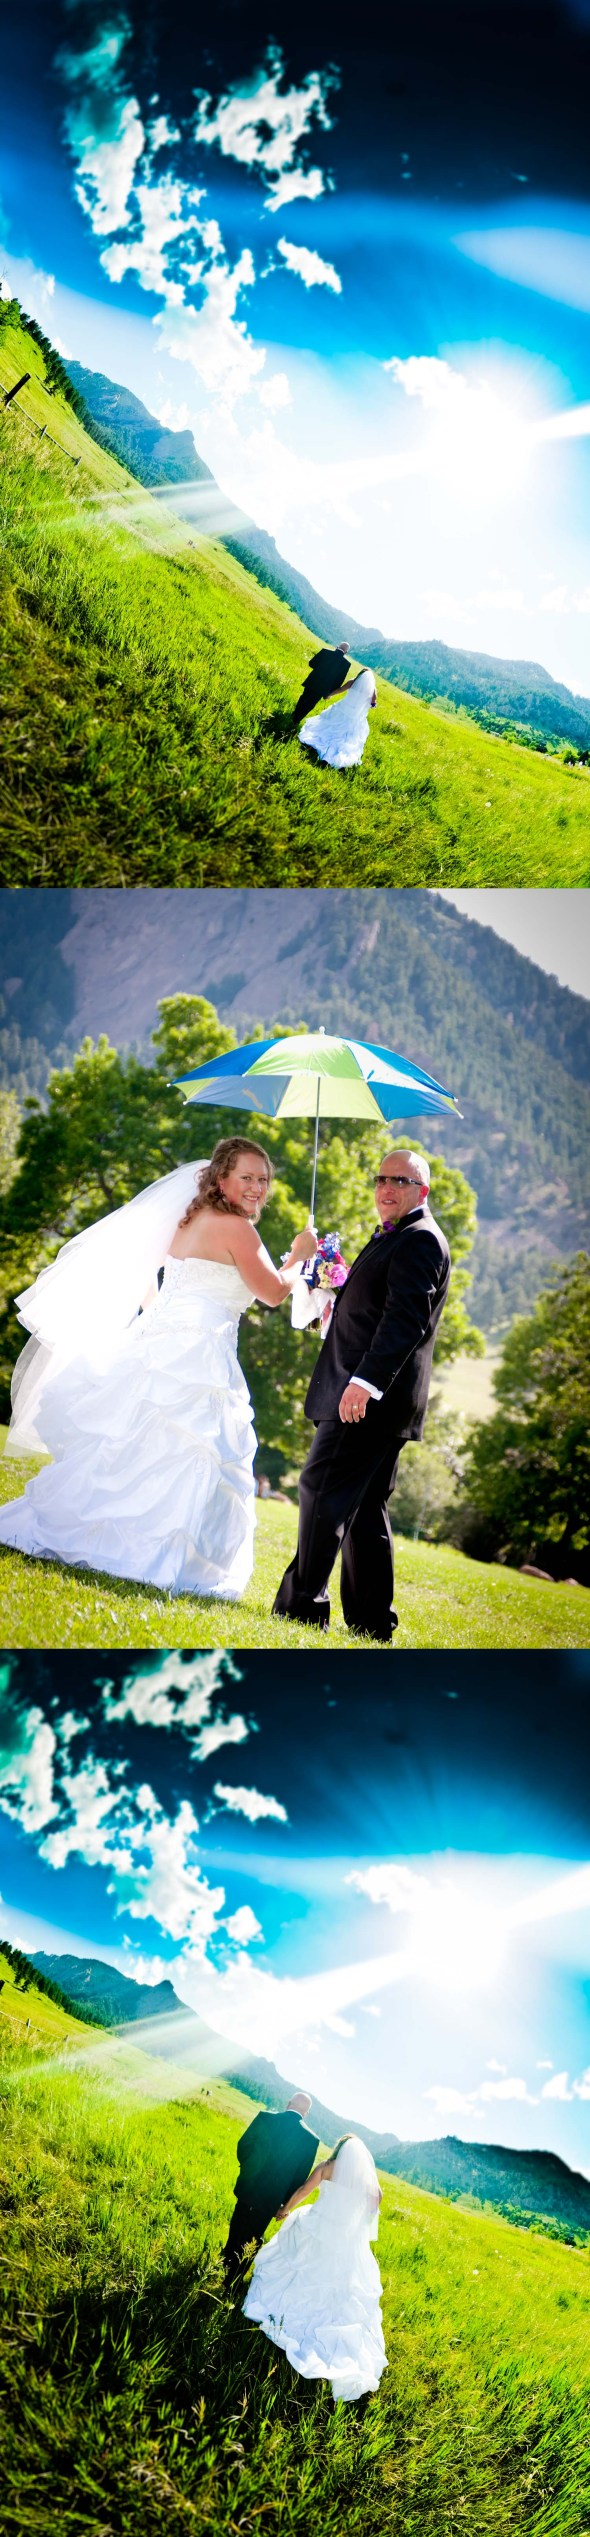 chautauqua boulder bride and groom